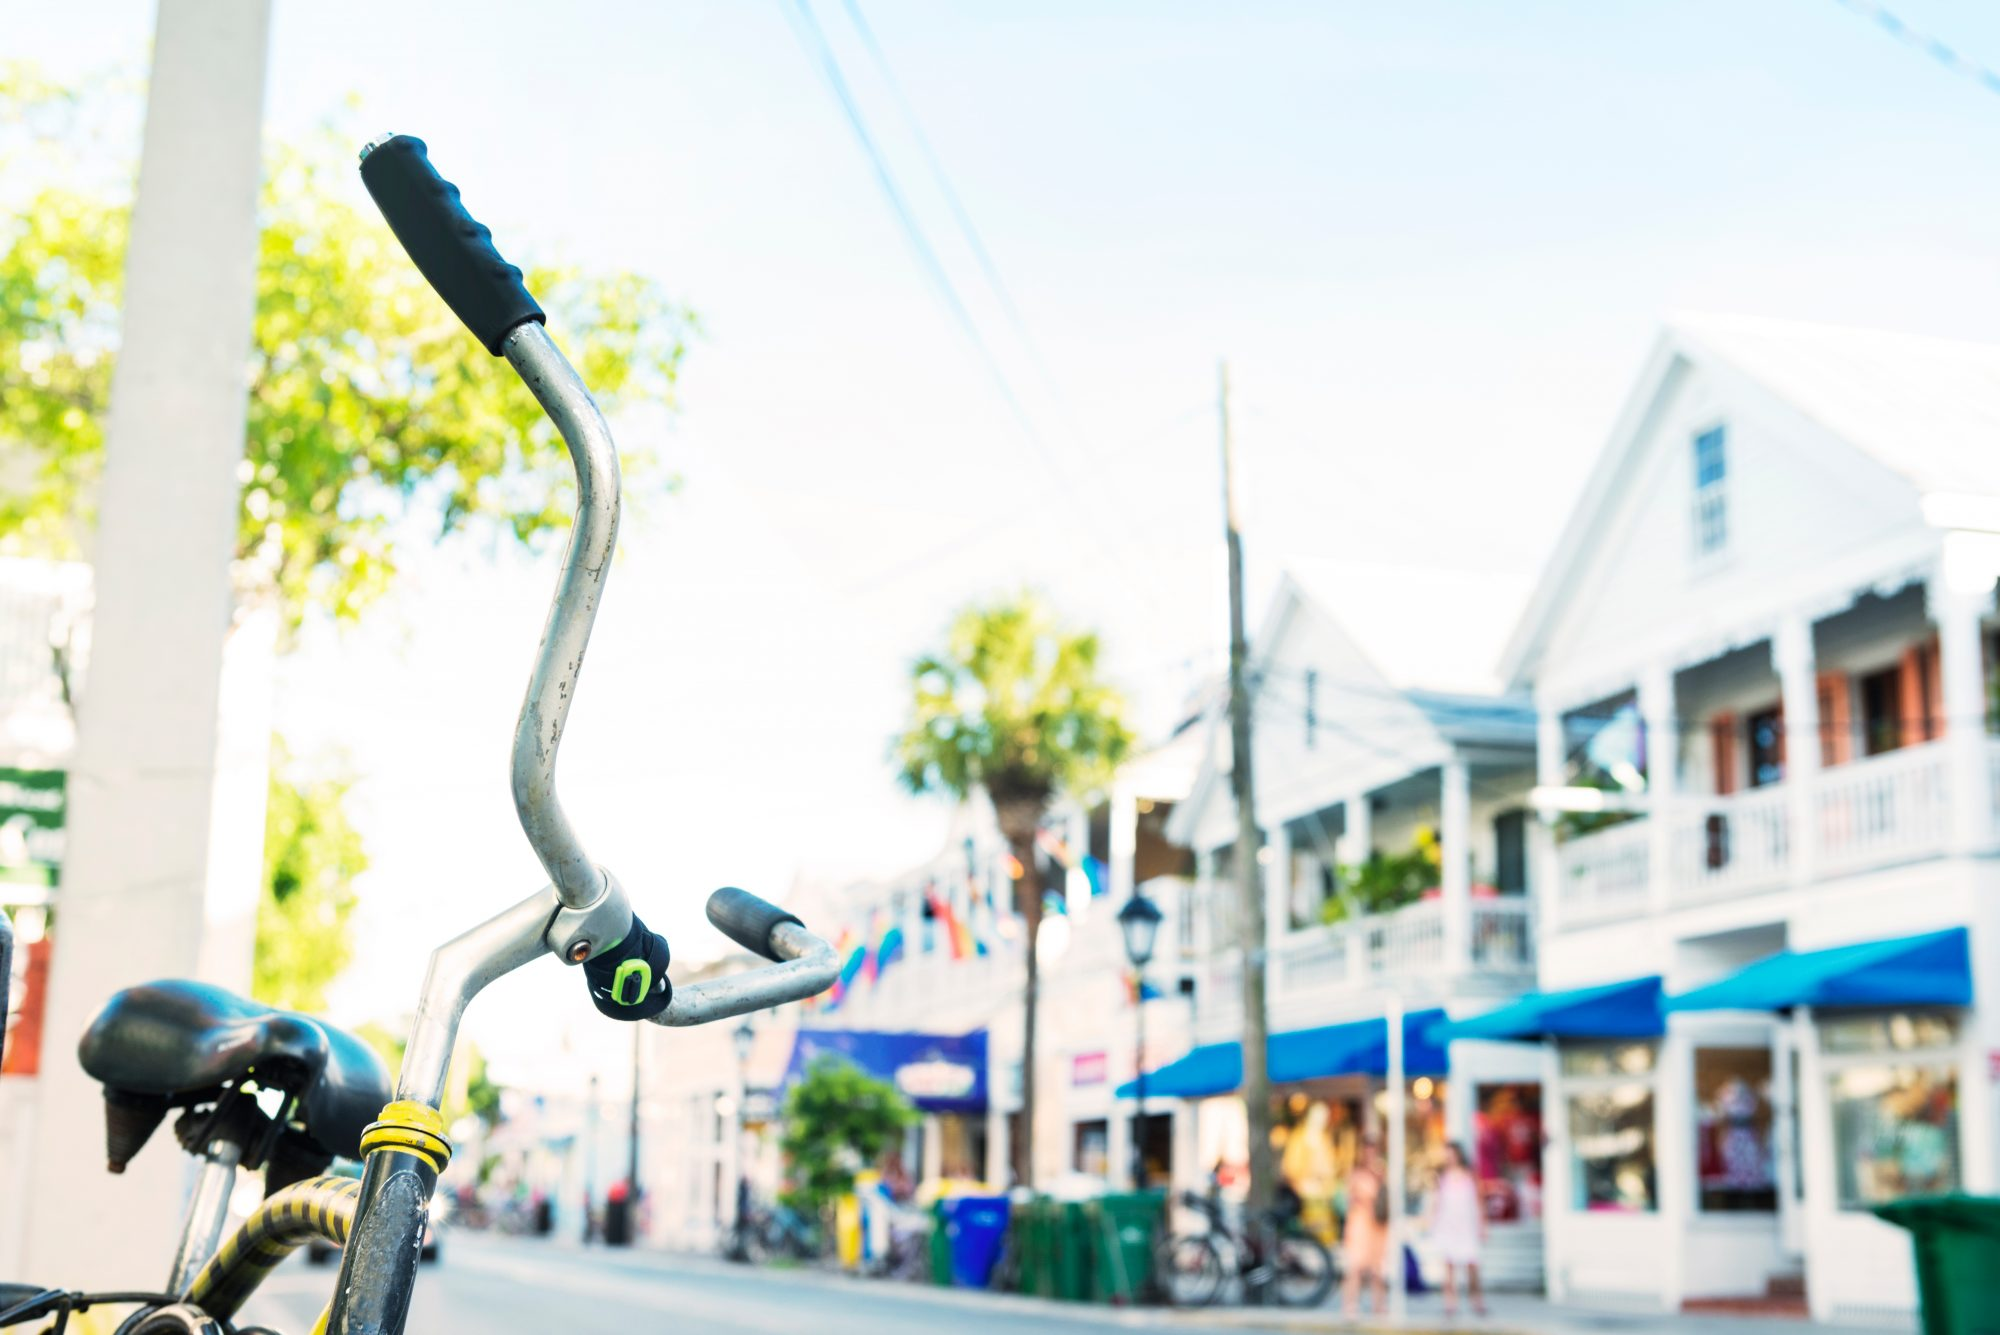 Cruise around the island via bicycle and revel in the warm tropical breeze and Key West sunshine. Many of the hotels around town offer bicycle rentals to guests and it's the perfect way to see the sights, as well as ditch the headache of trying to find parking.